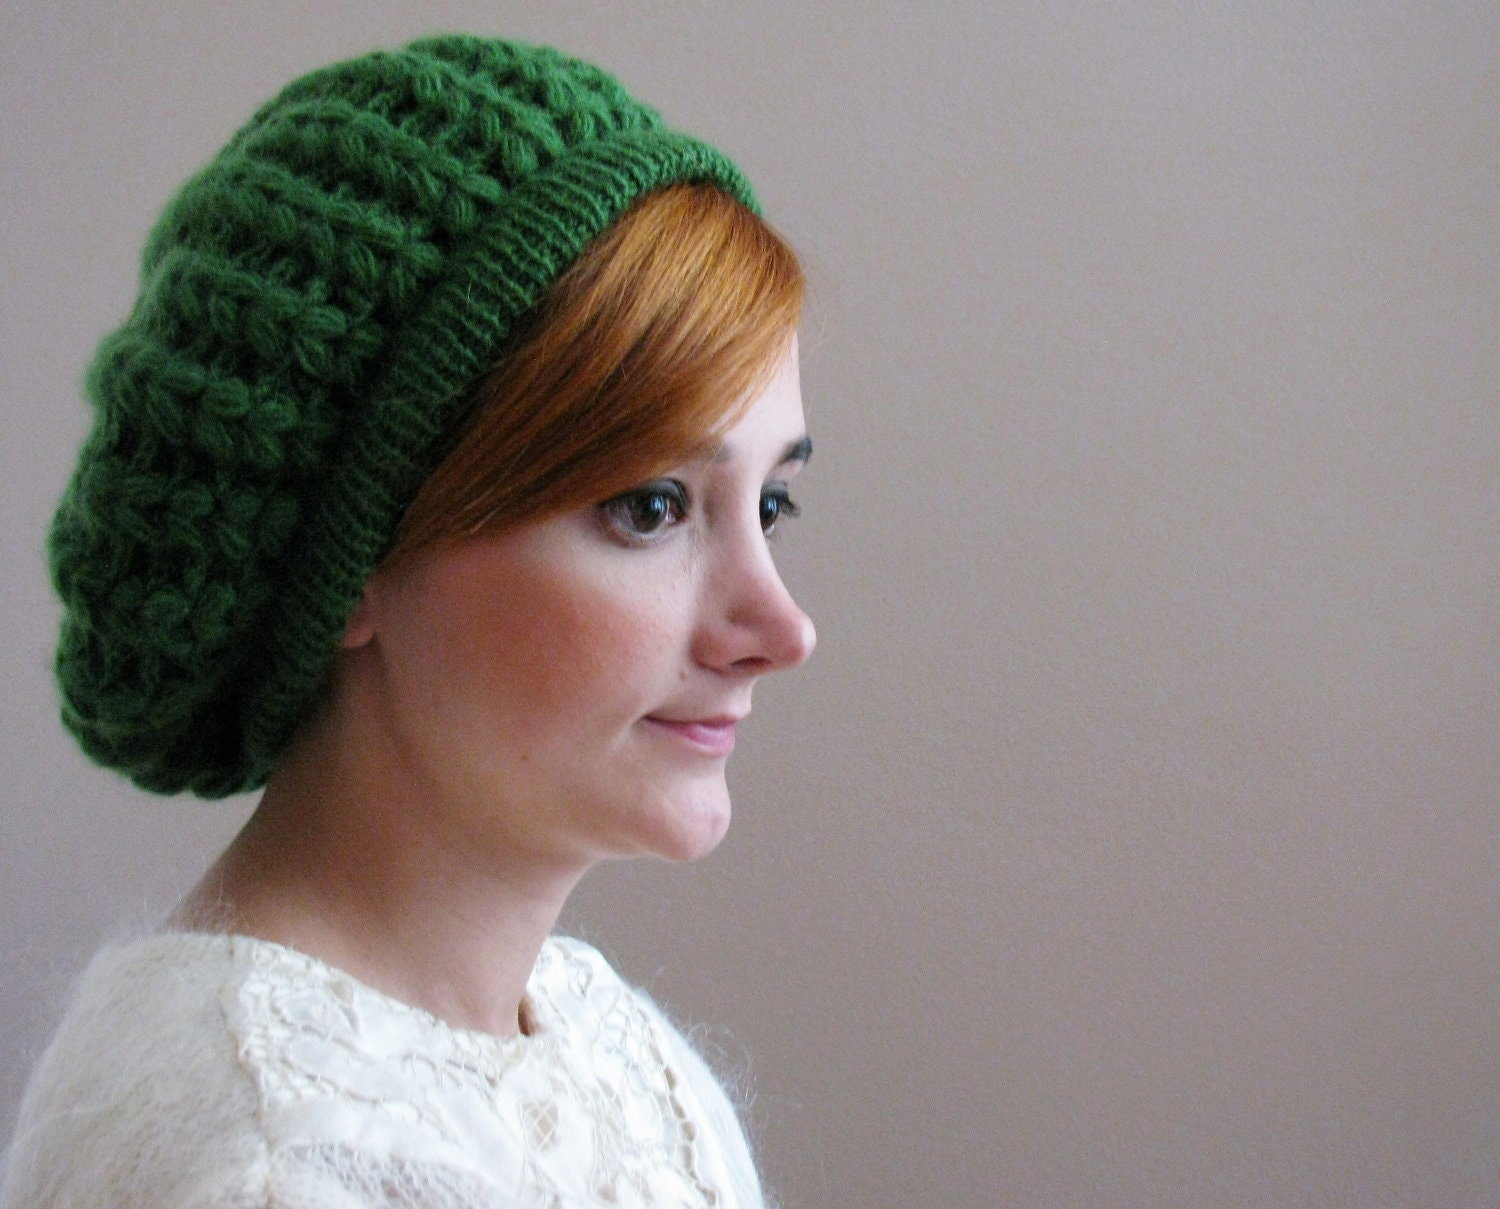 Hot Green Leaf Beret - KokoshKnitting